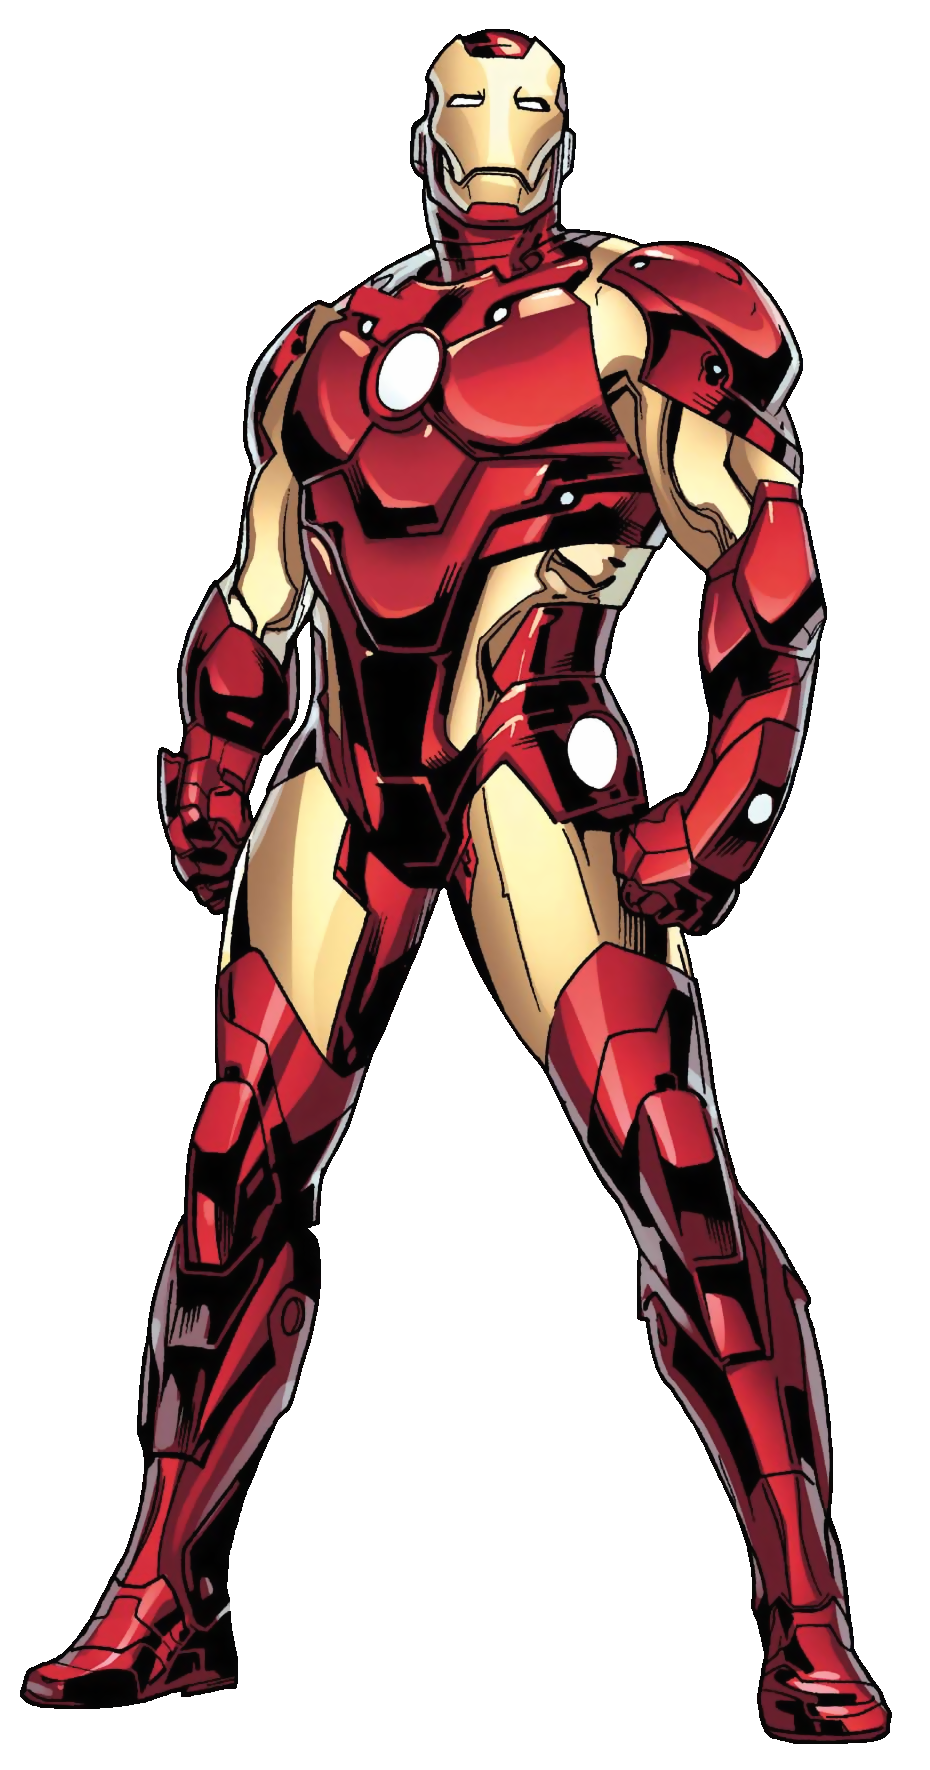 ironman images download #8710